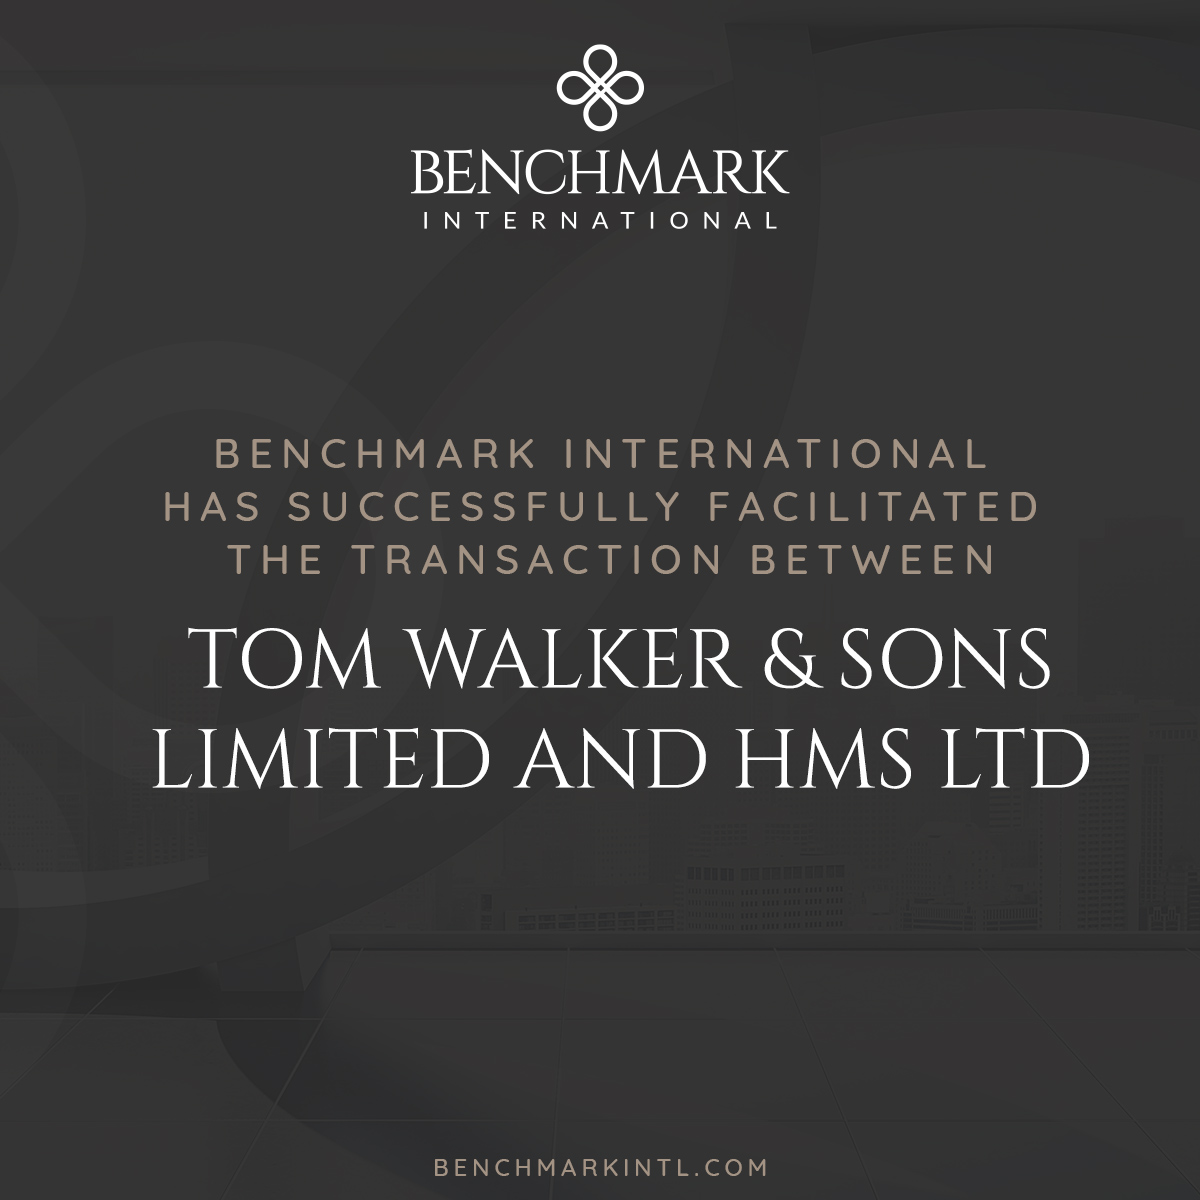 HMS acquires Tom Walker & Sons